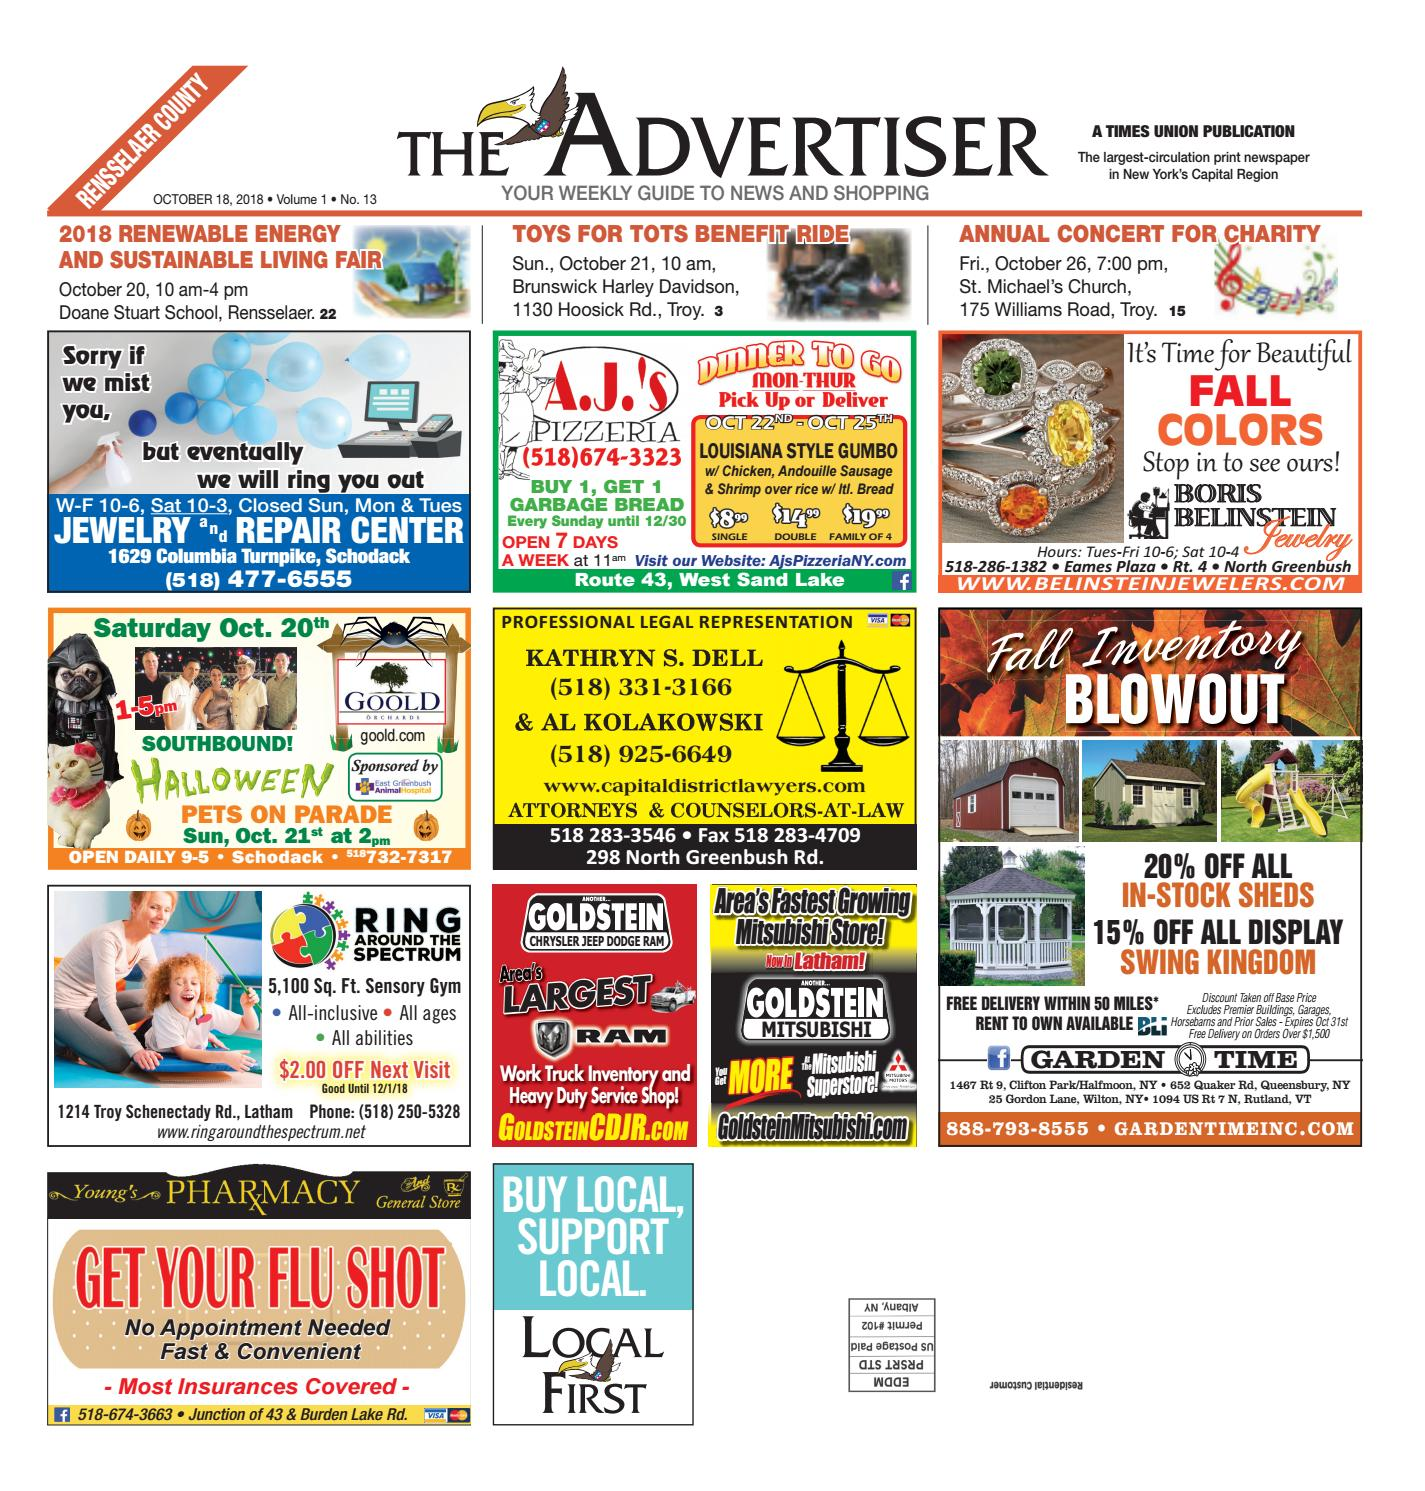 Local First The Advertiser 101818